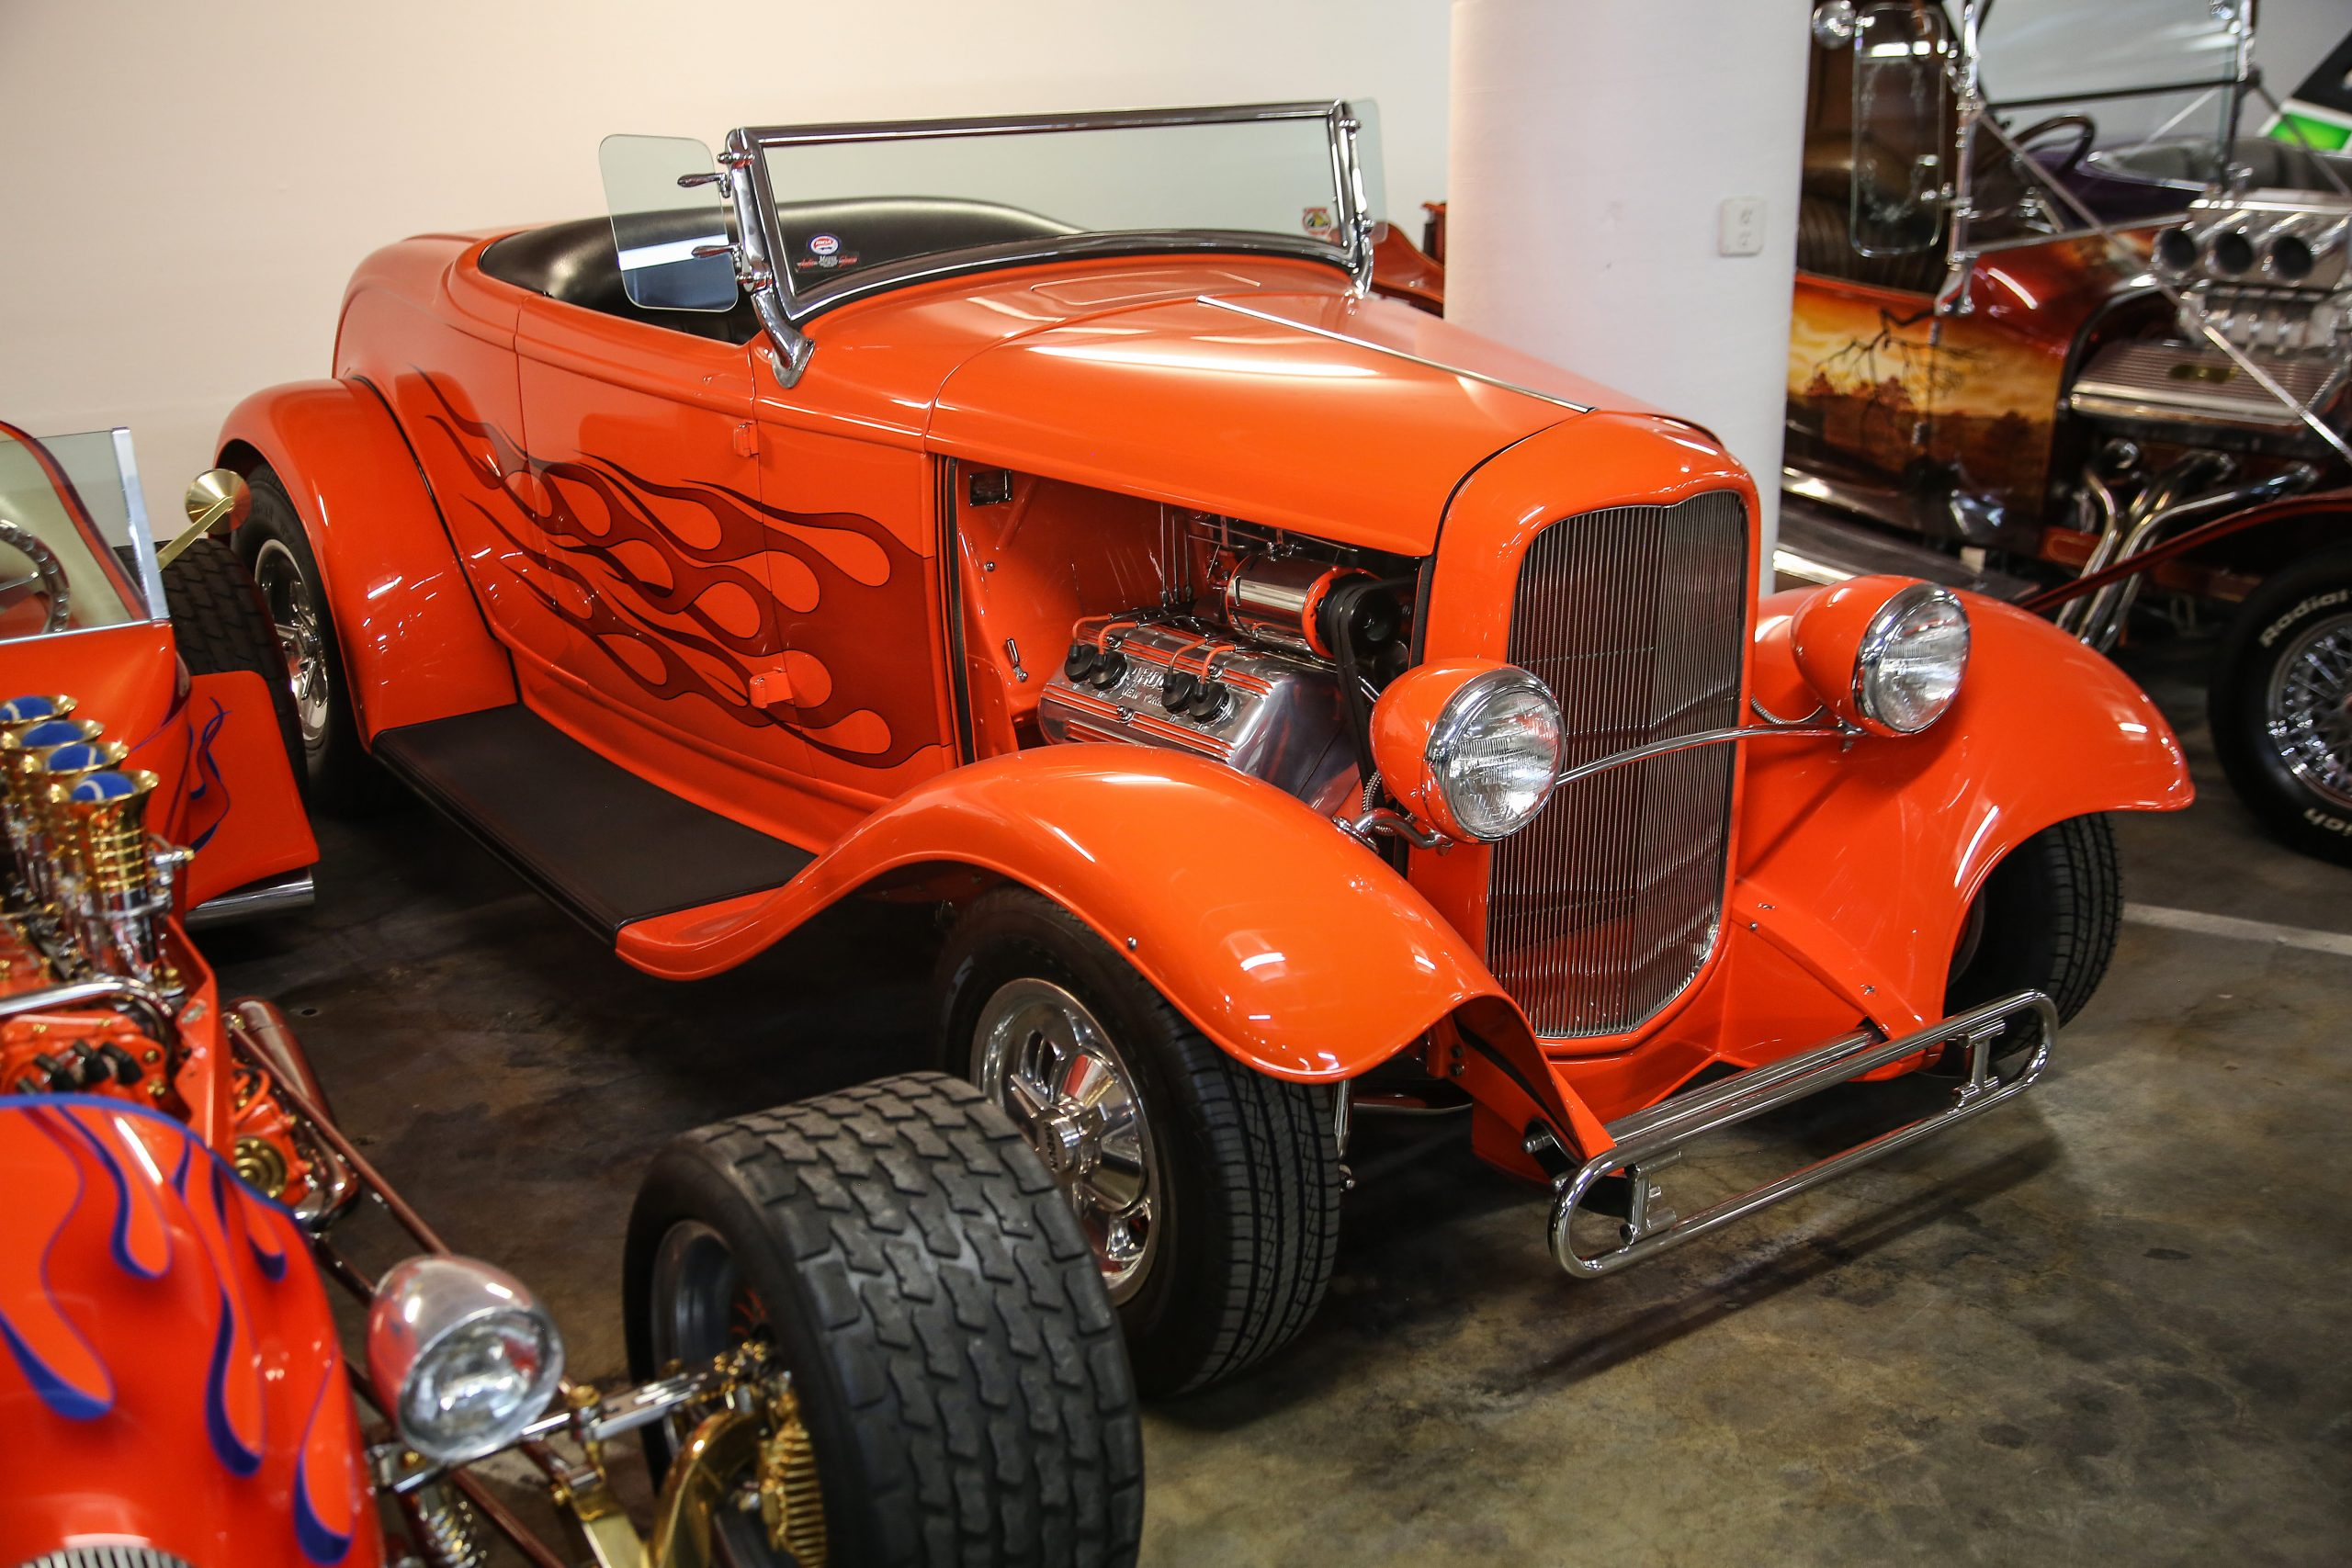 1932 Ford Orange Twist 1988 AMBR winner